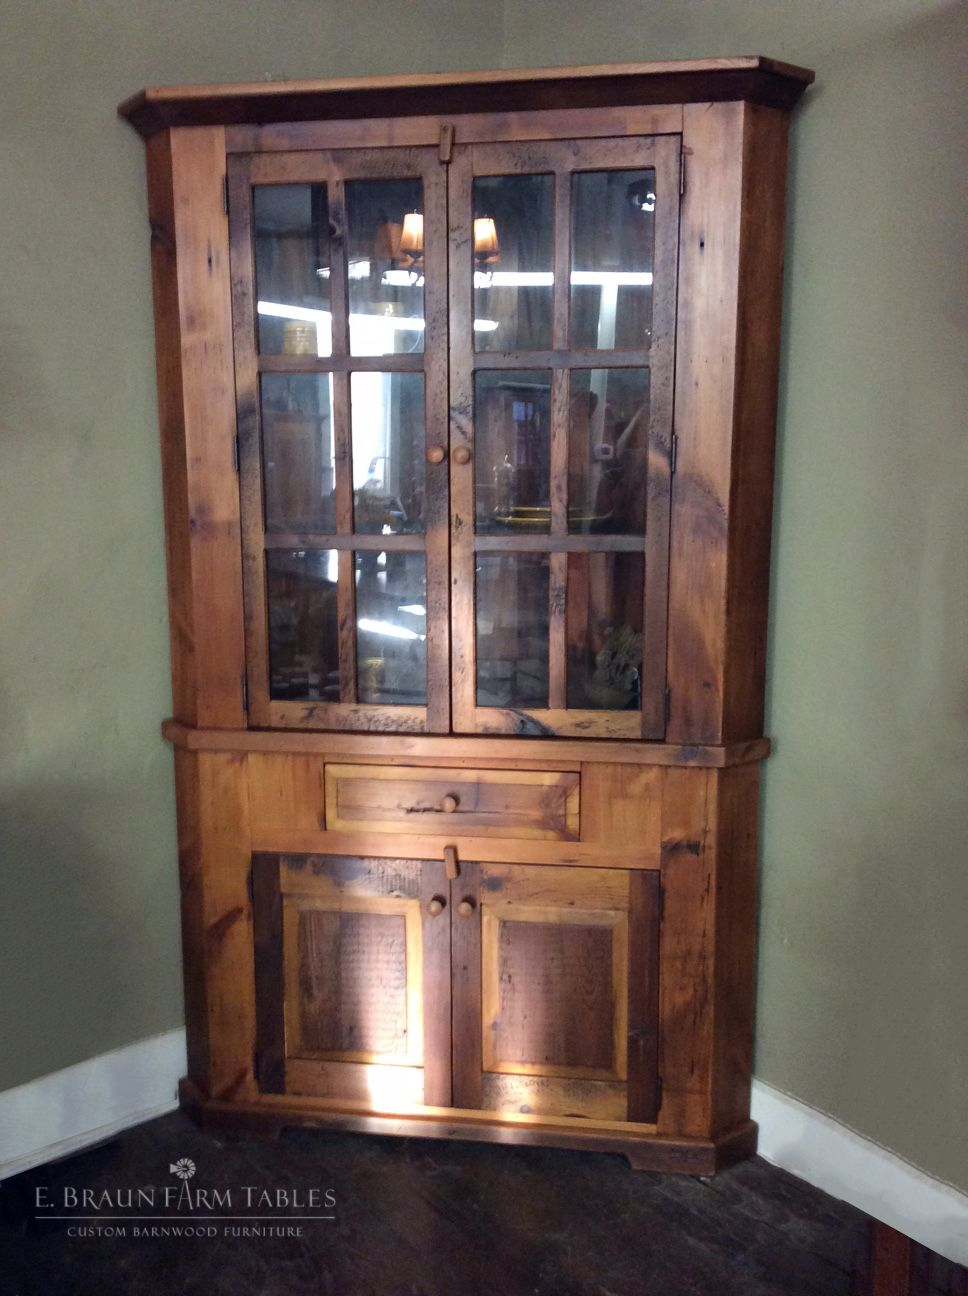 This Natural Color Corner Cabinet Is On The Showroom Floor Right Now Ready For Purchase